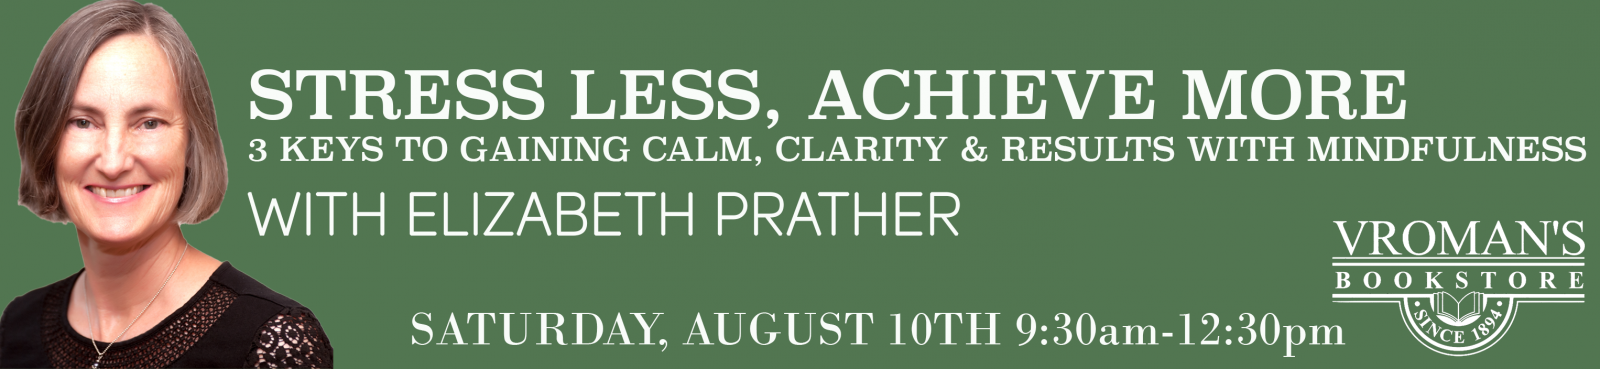 Stress Less, Achieve More Mindfulness Workshop with Elizabeth Prather, Saturday August 10th from 9:30-12:30pm